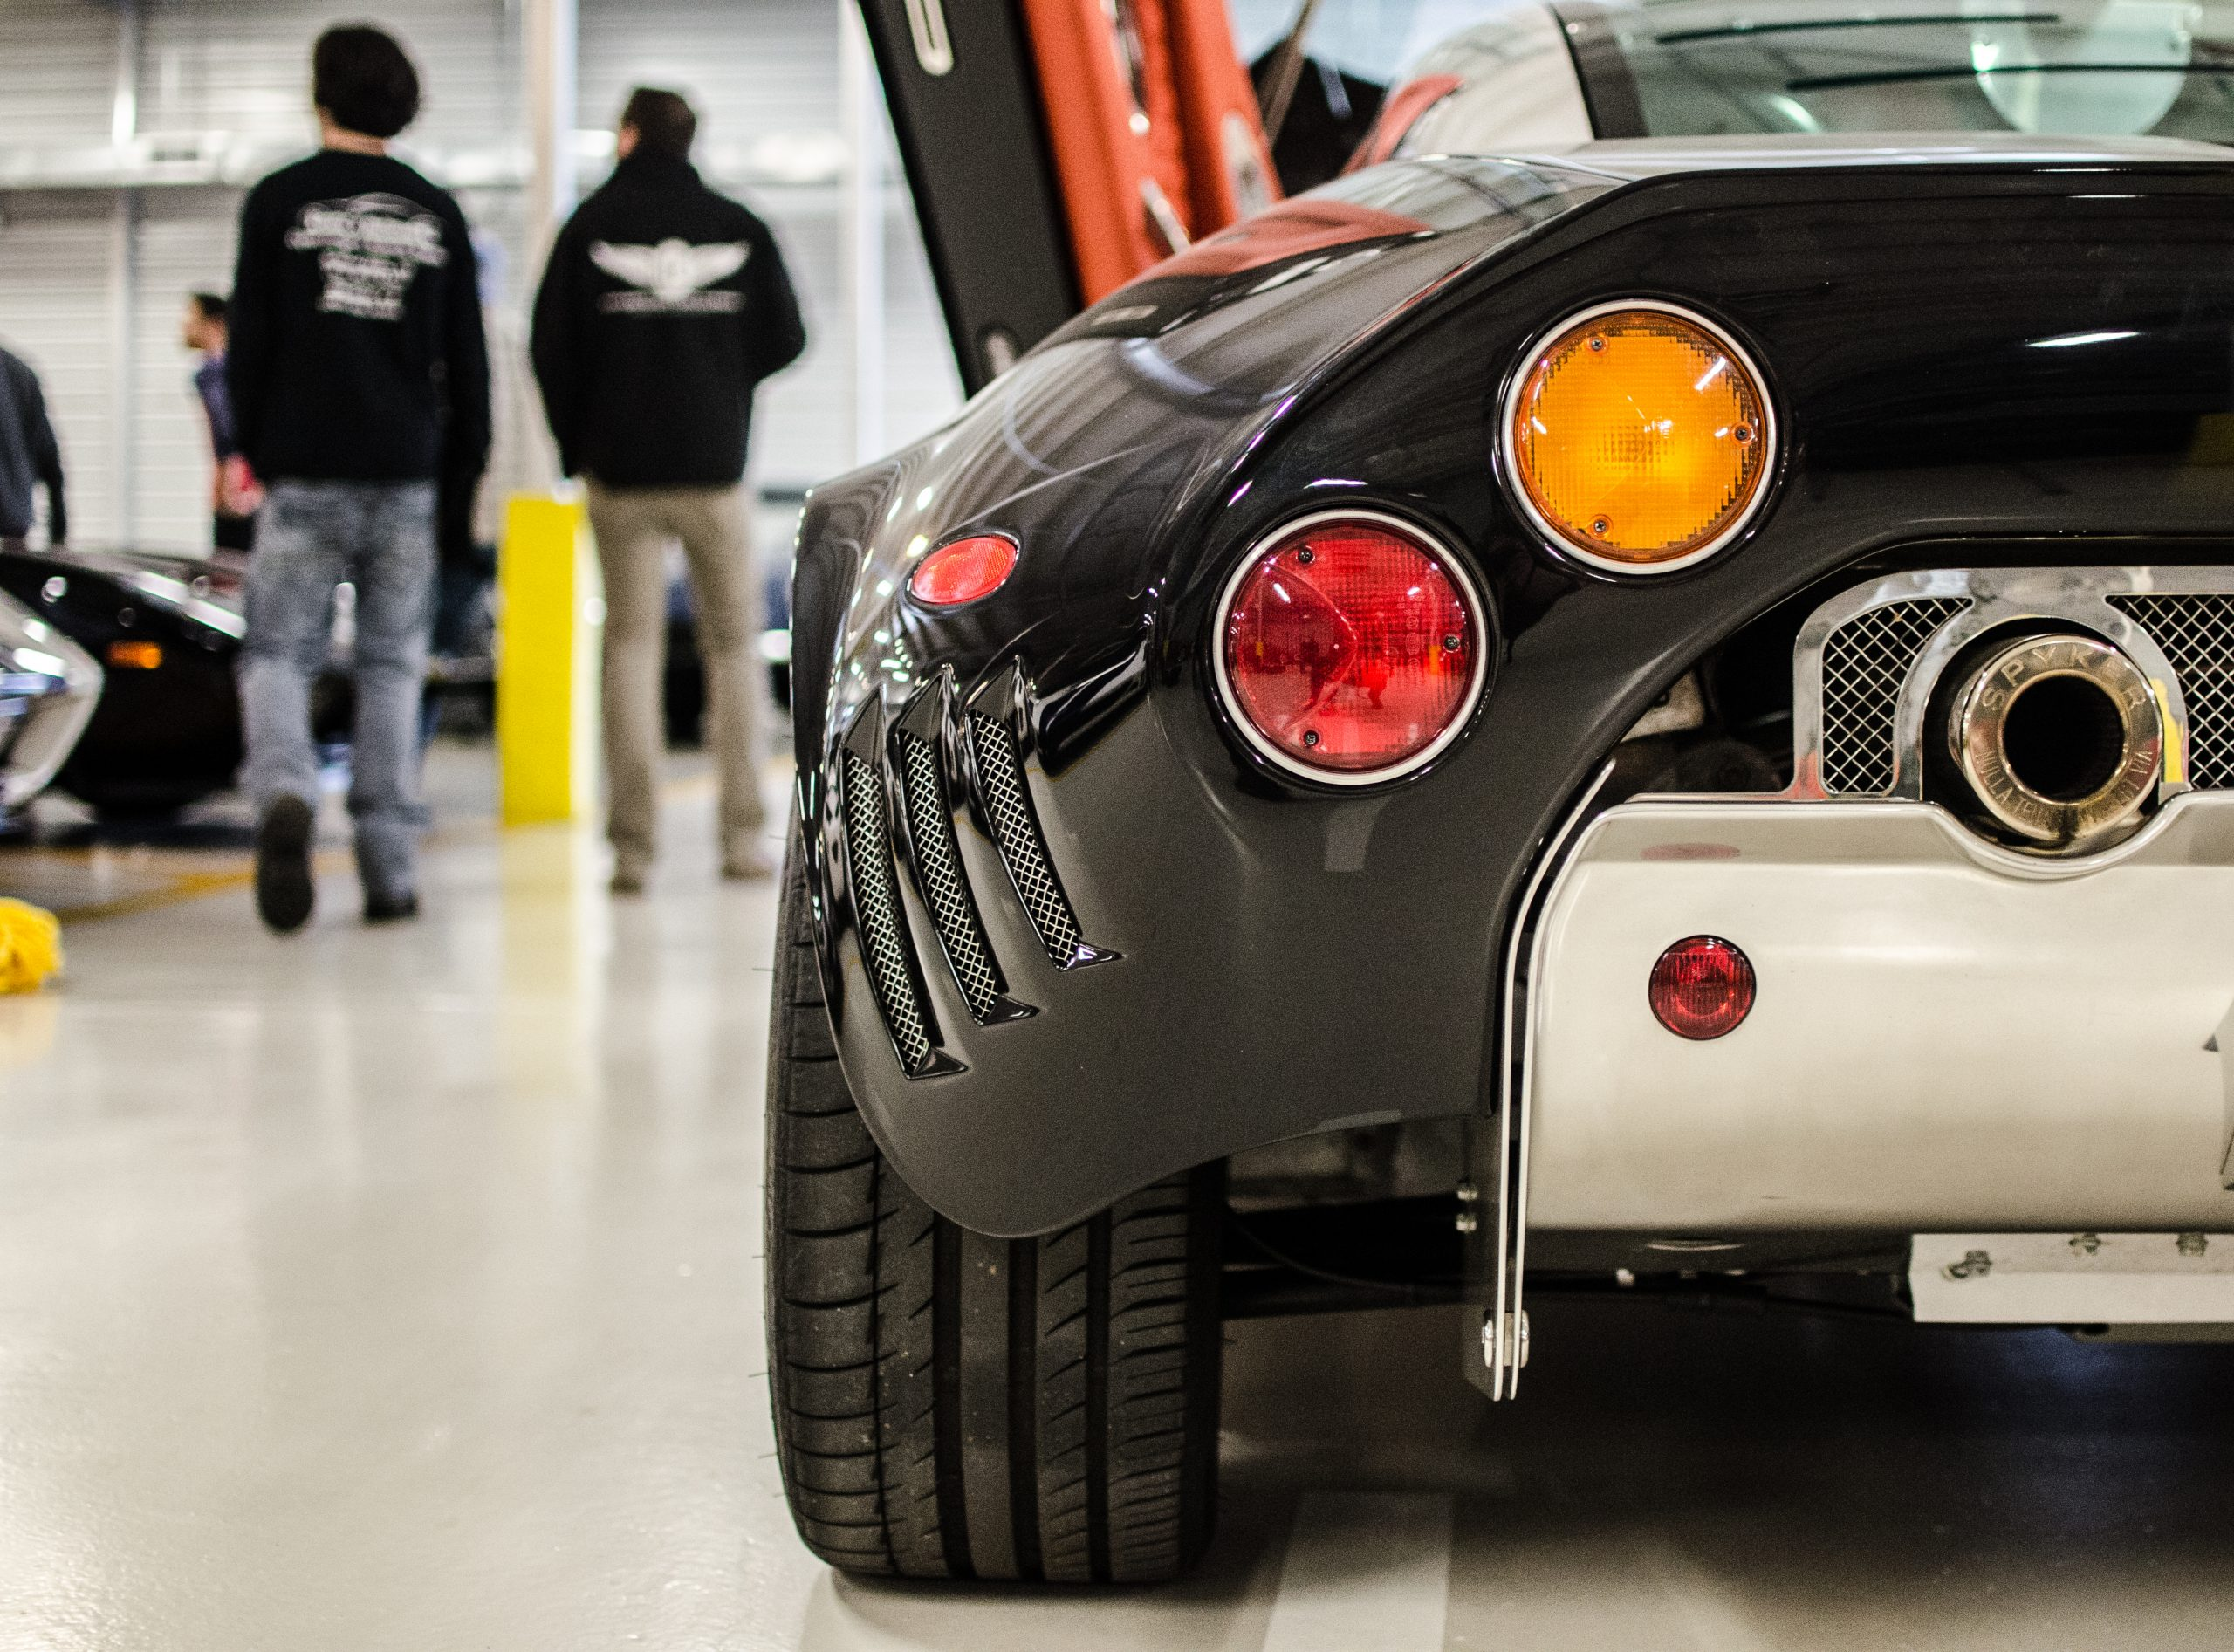 Hagerty G + S Spyker taillight